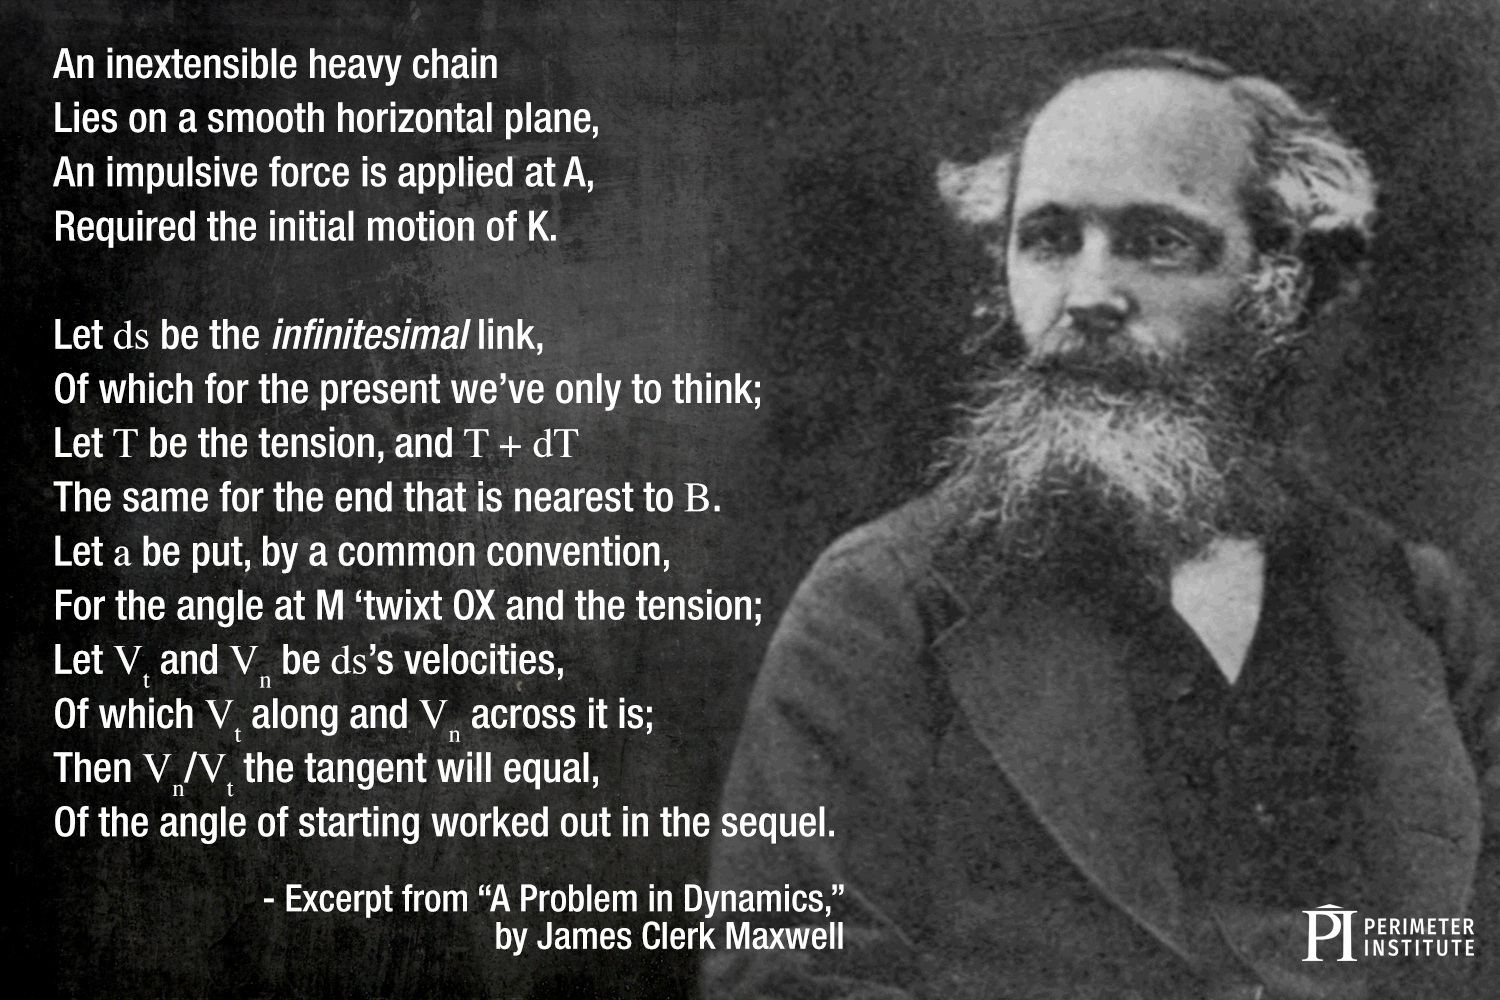 james clerk maxwell poem